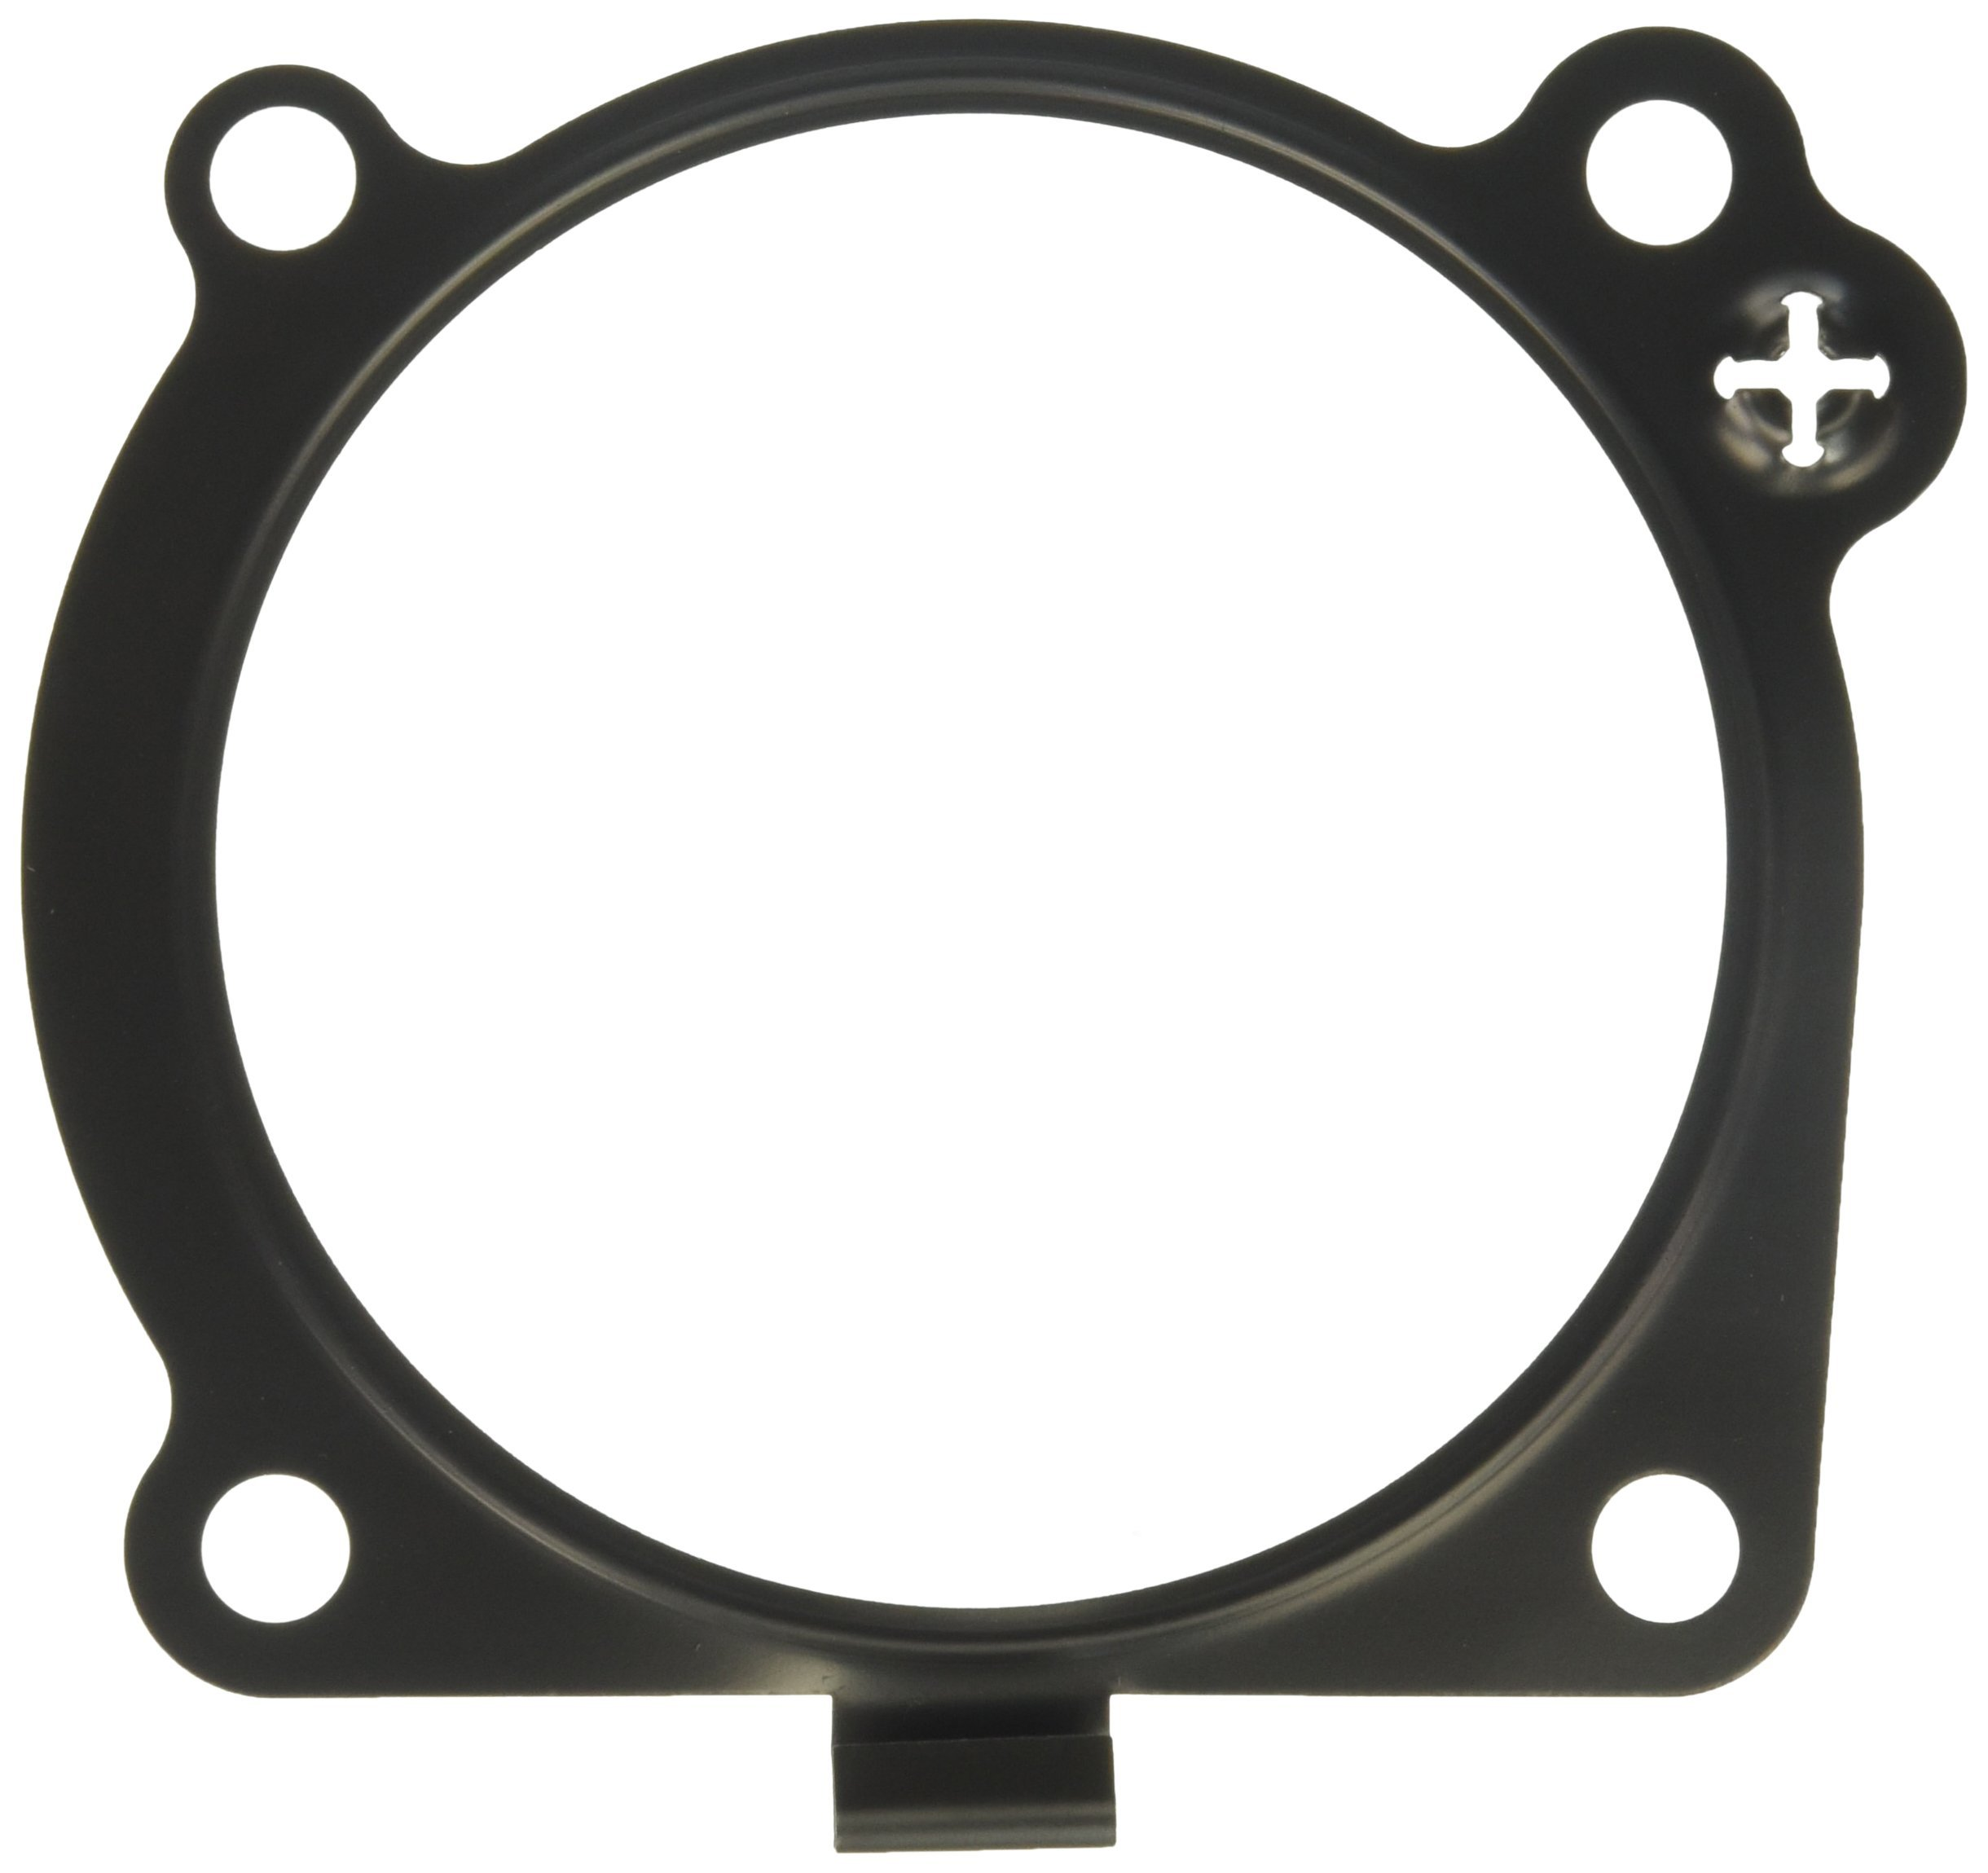 MAHLE Original G31943 Fuel Injection Throttle Body Mounting Gasket